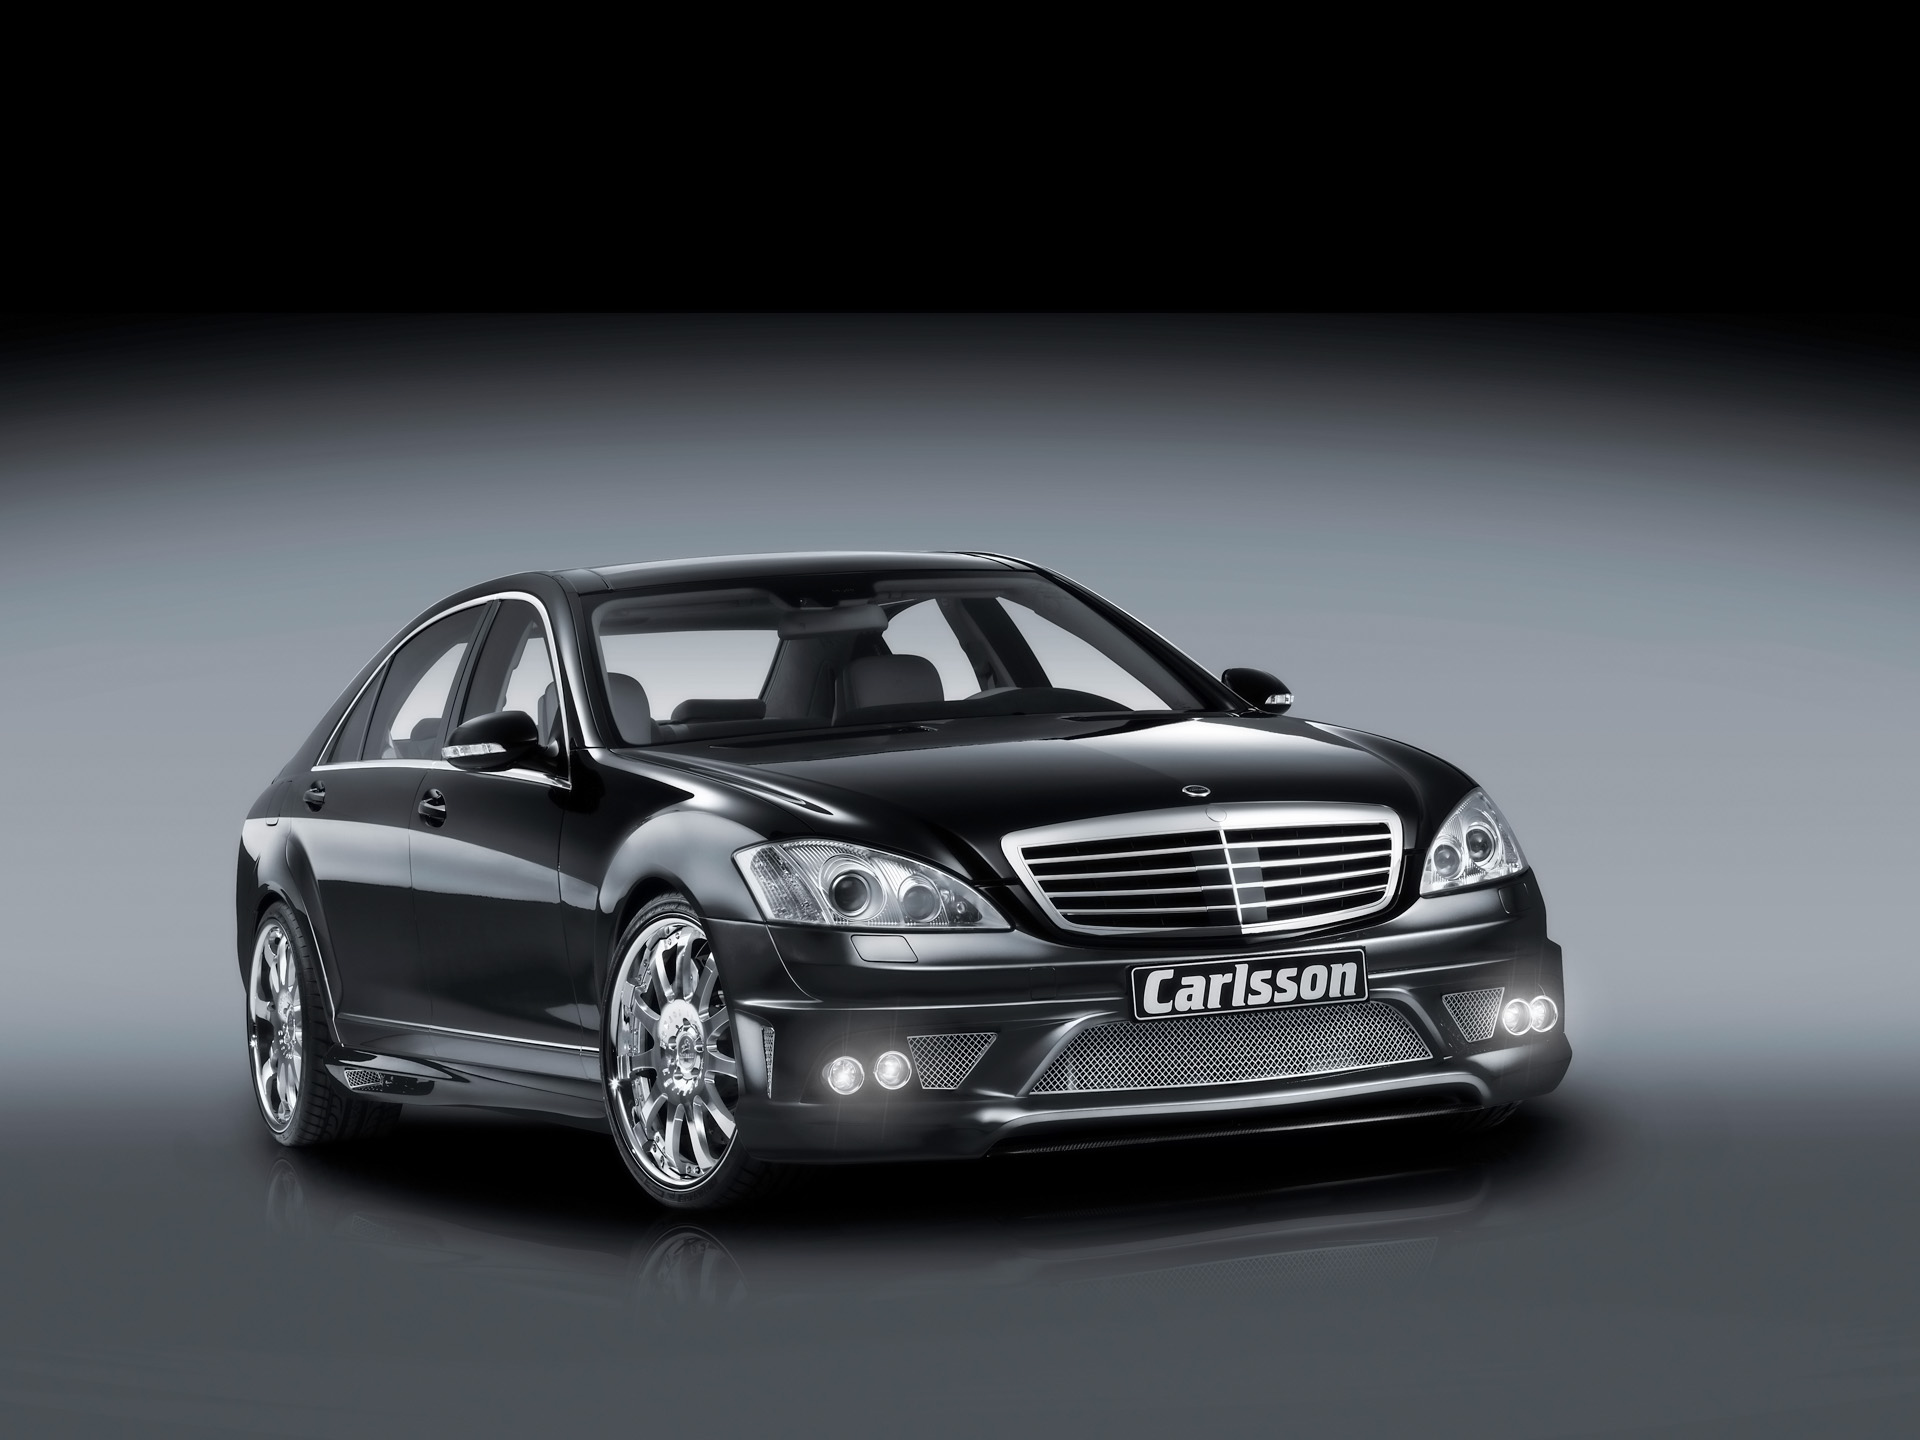 Carlsson Noble RS Mercedes-Benz S-Class photo 59870